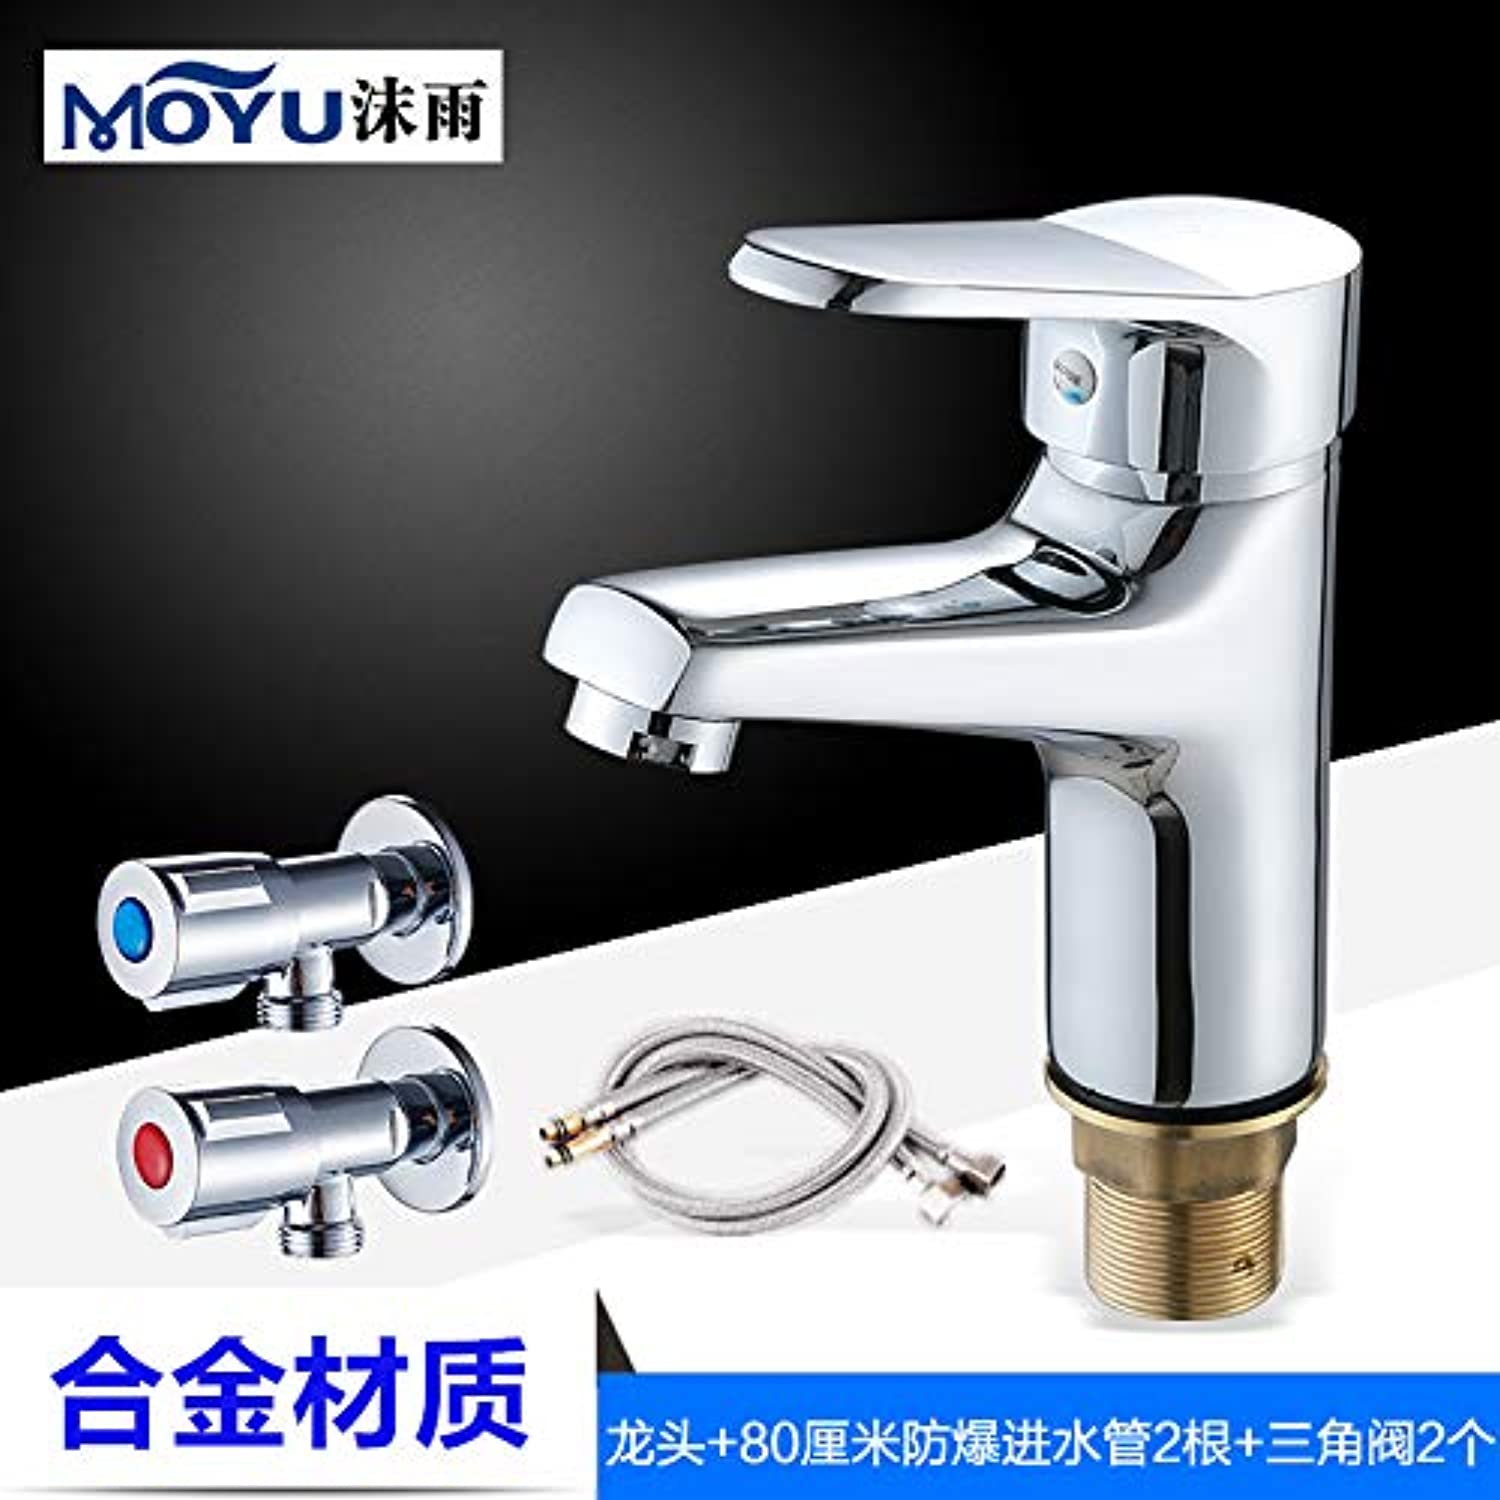 JWLT Faucet All Copper hot and Cold Basin, Single Hole, Cold and Warm Mixing Valve, Bathroom Counter Basin, washbasin, washbasin, Bathroom Faucet,Alloy Cooling hot Inlet Pipe 2 Angle Valve 2.